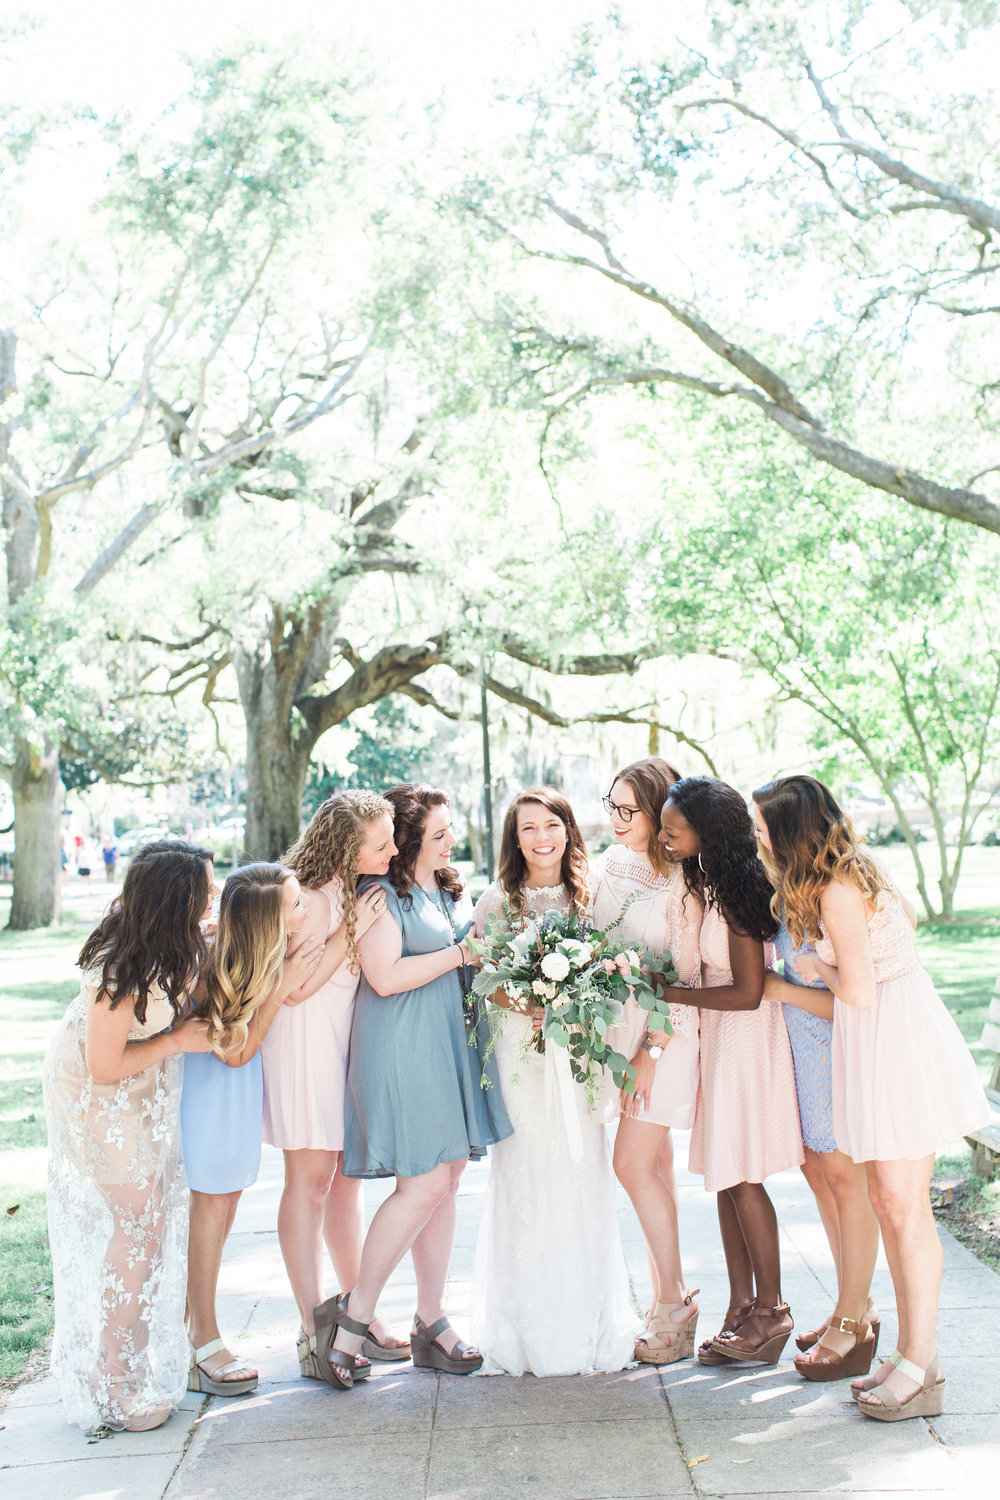 apt-b-photography-ivory-and-beau-bridal-boutique-savannah-florist-savannah-bridal-boutique-savannah-elopment-forsyth-fountain-wedding-intimate-wedding-southern-elopement-savannah-weddings-13.jpg